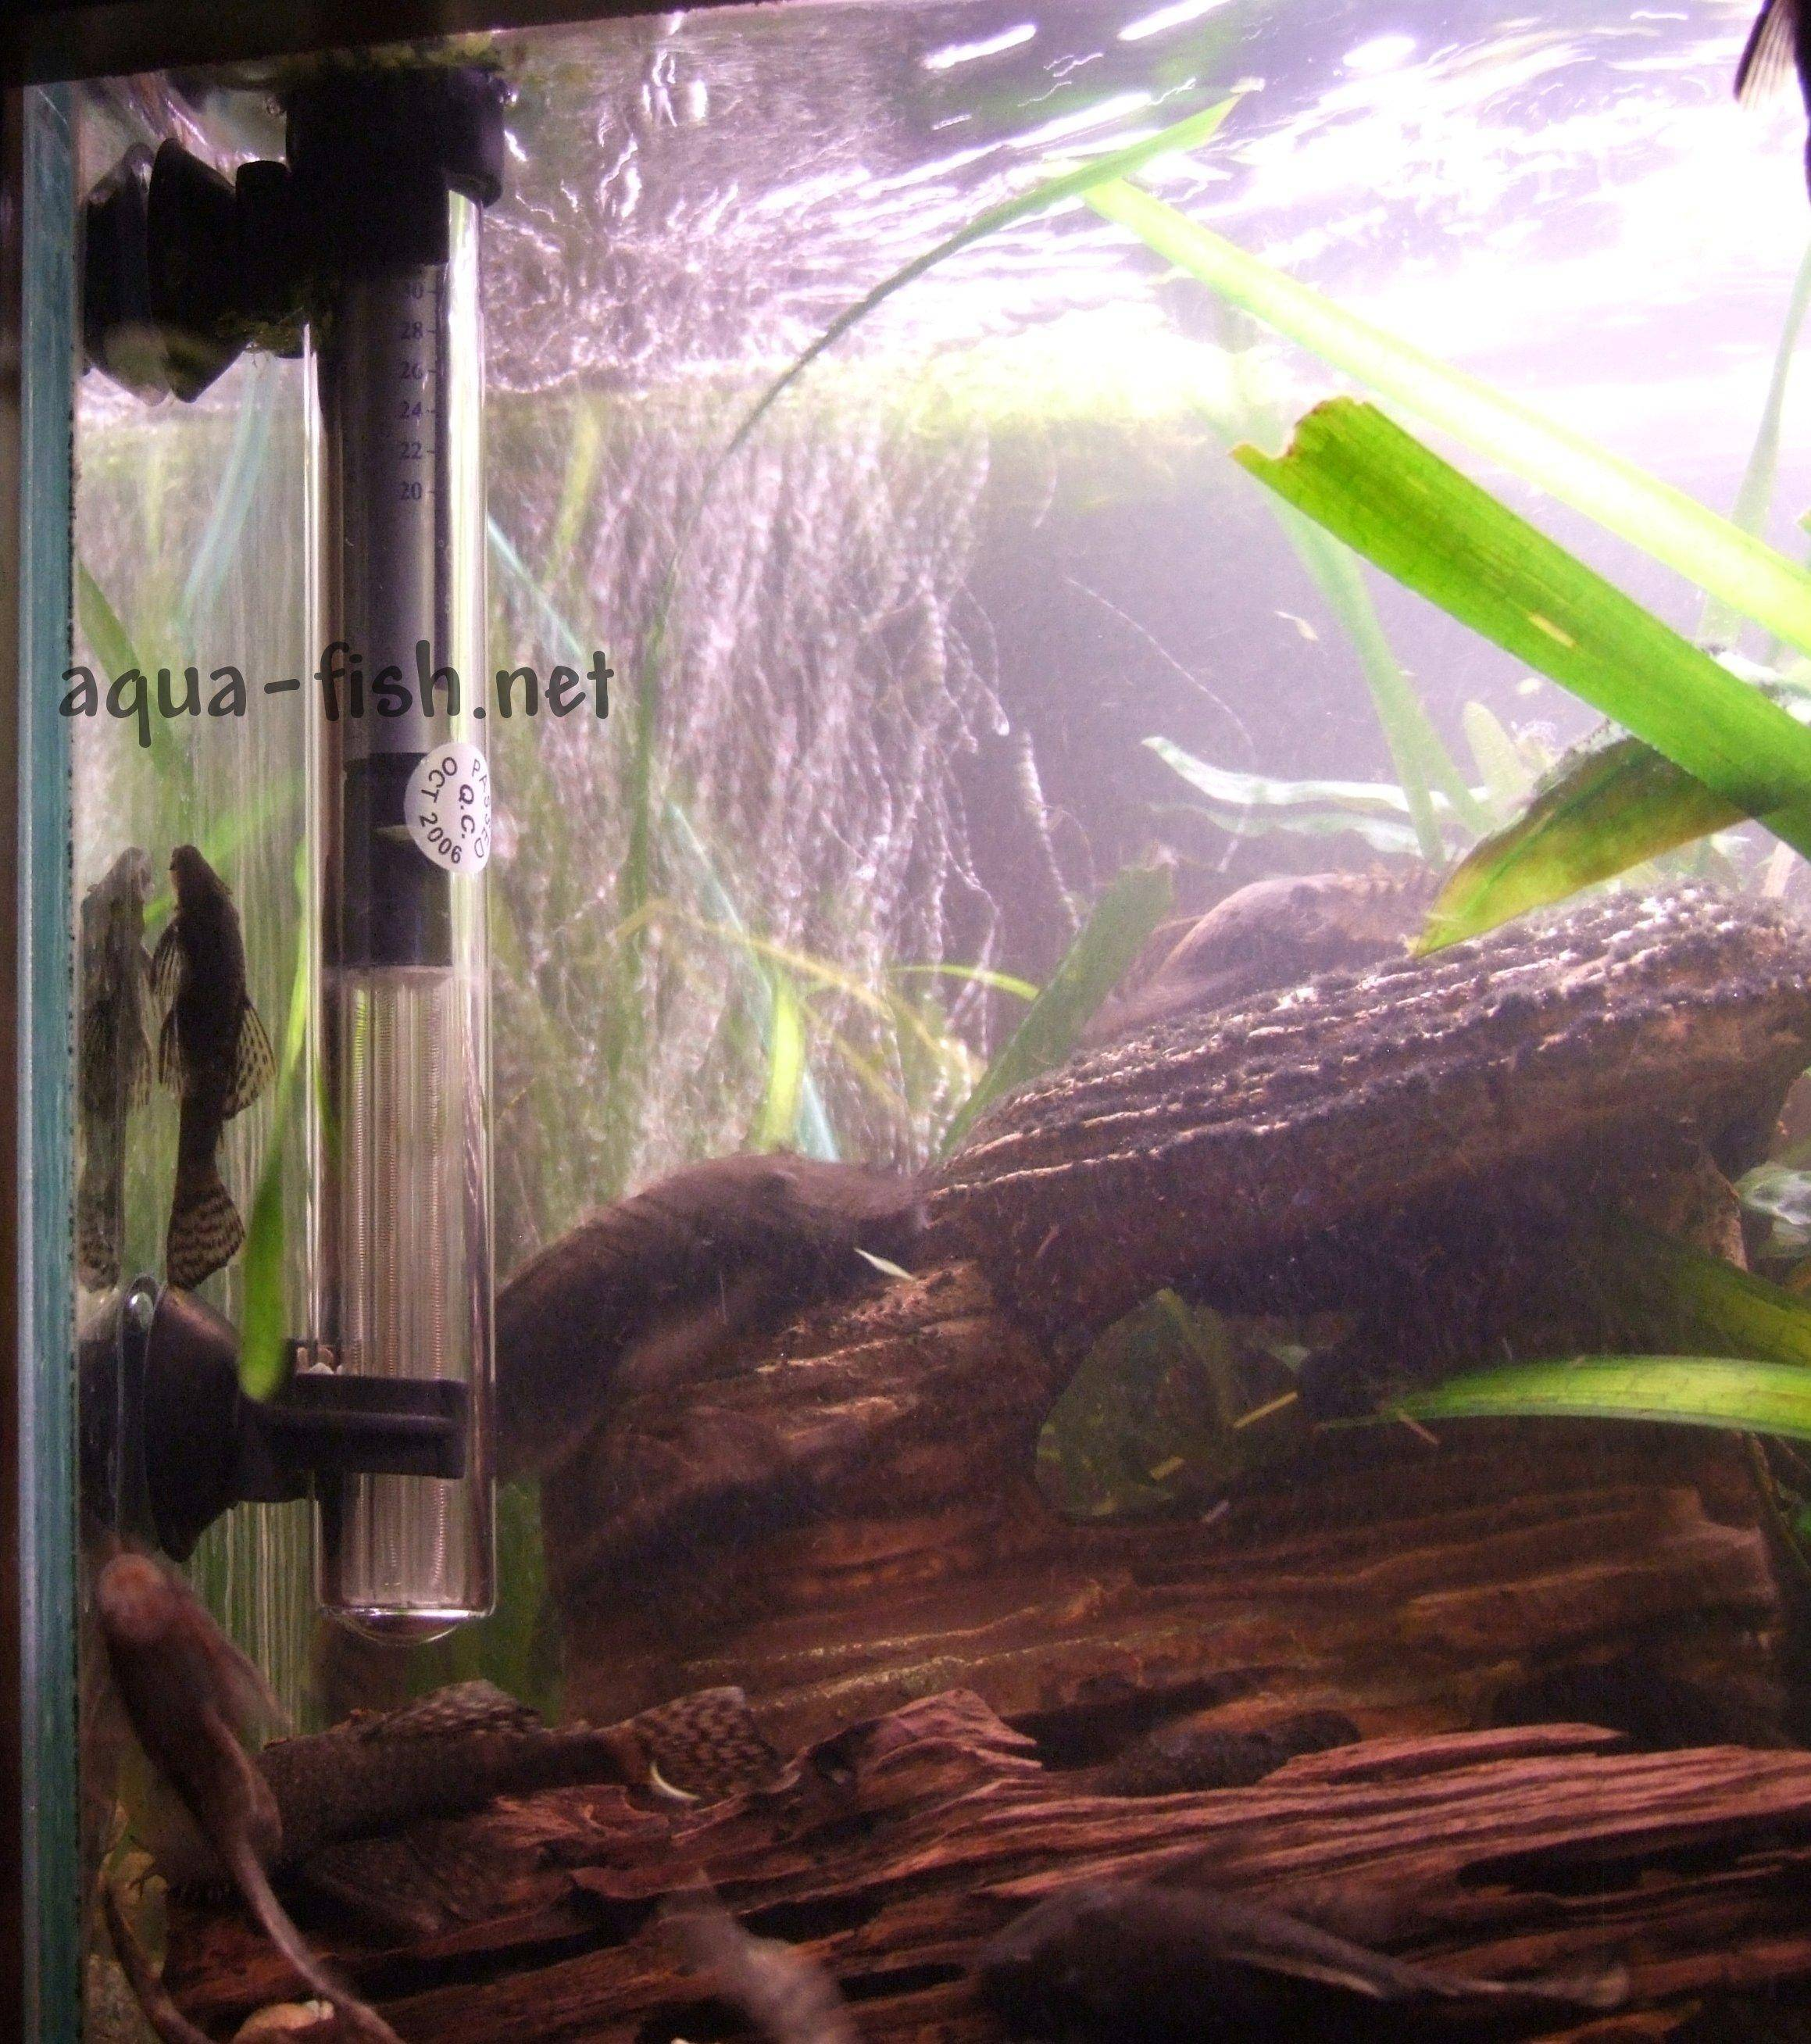 Fish tank electricity cost - Aquarium Heater Aquarium Heater Picture 2